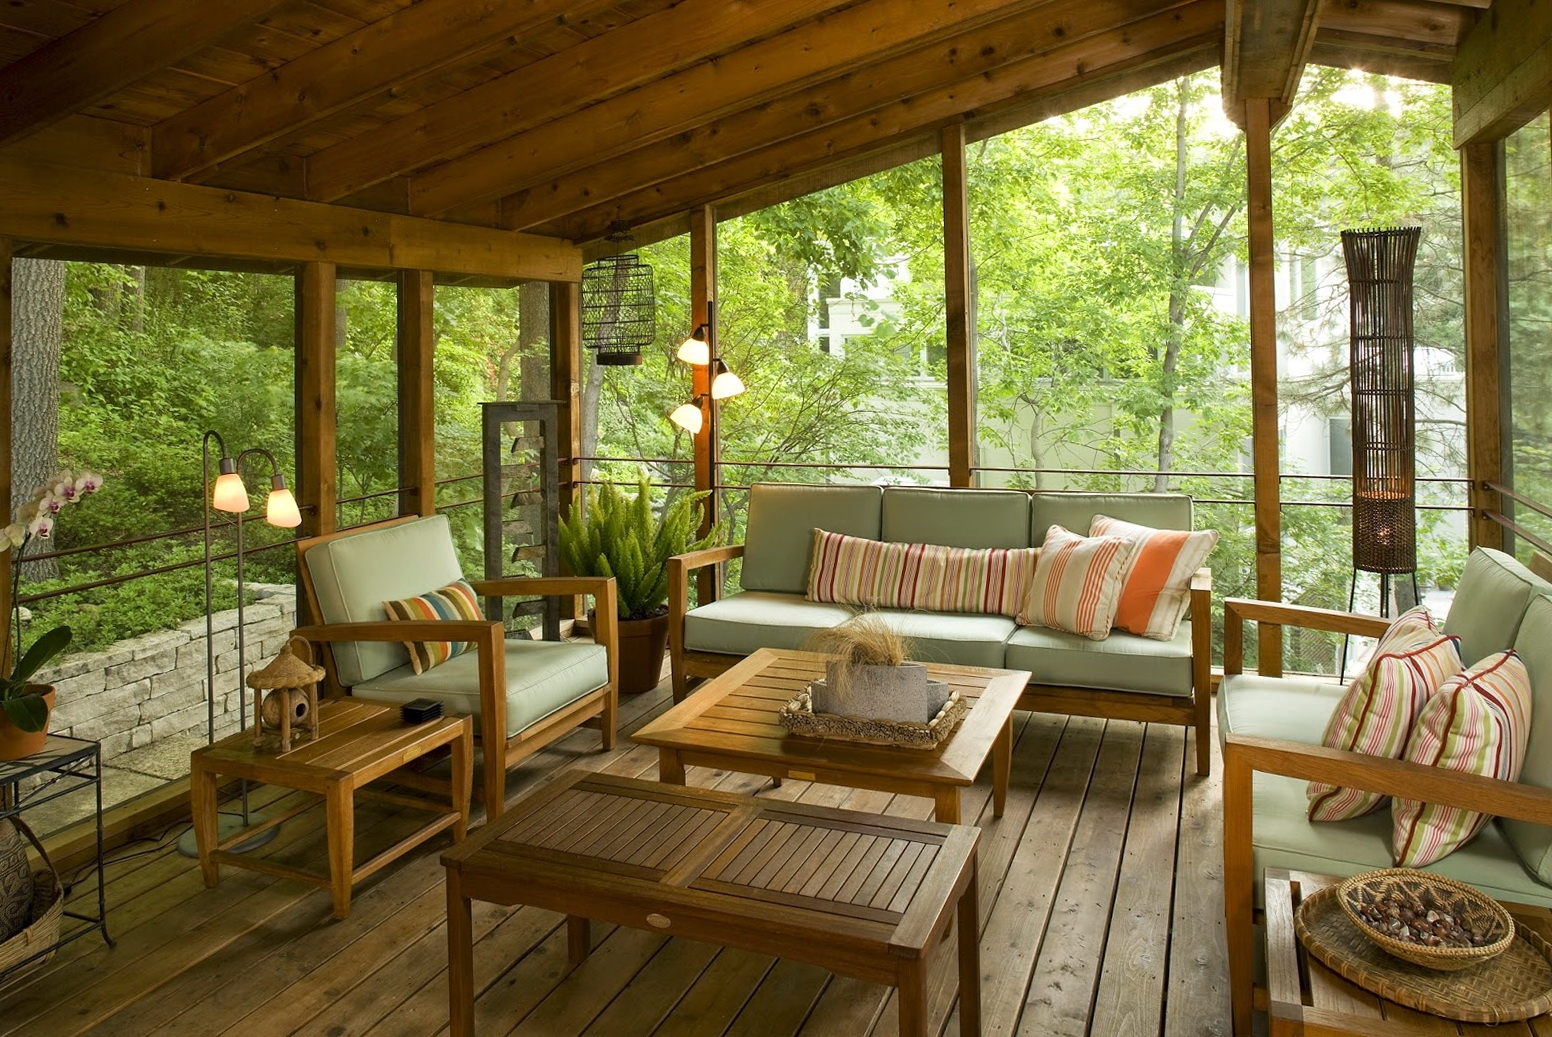 10 Interesting Back Porch Design Perfect For Everything ... on Apartment Back Porch Ideas id=97719